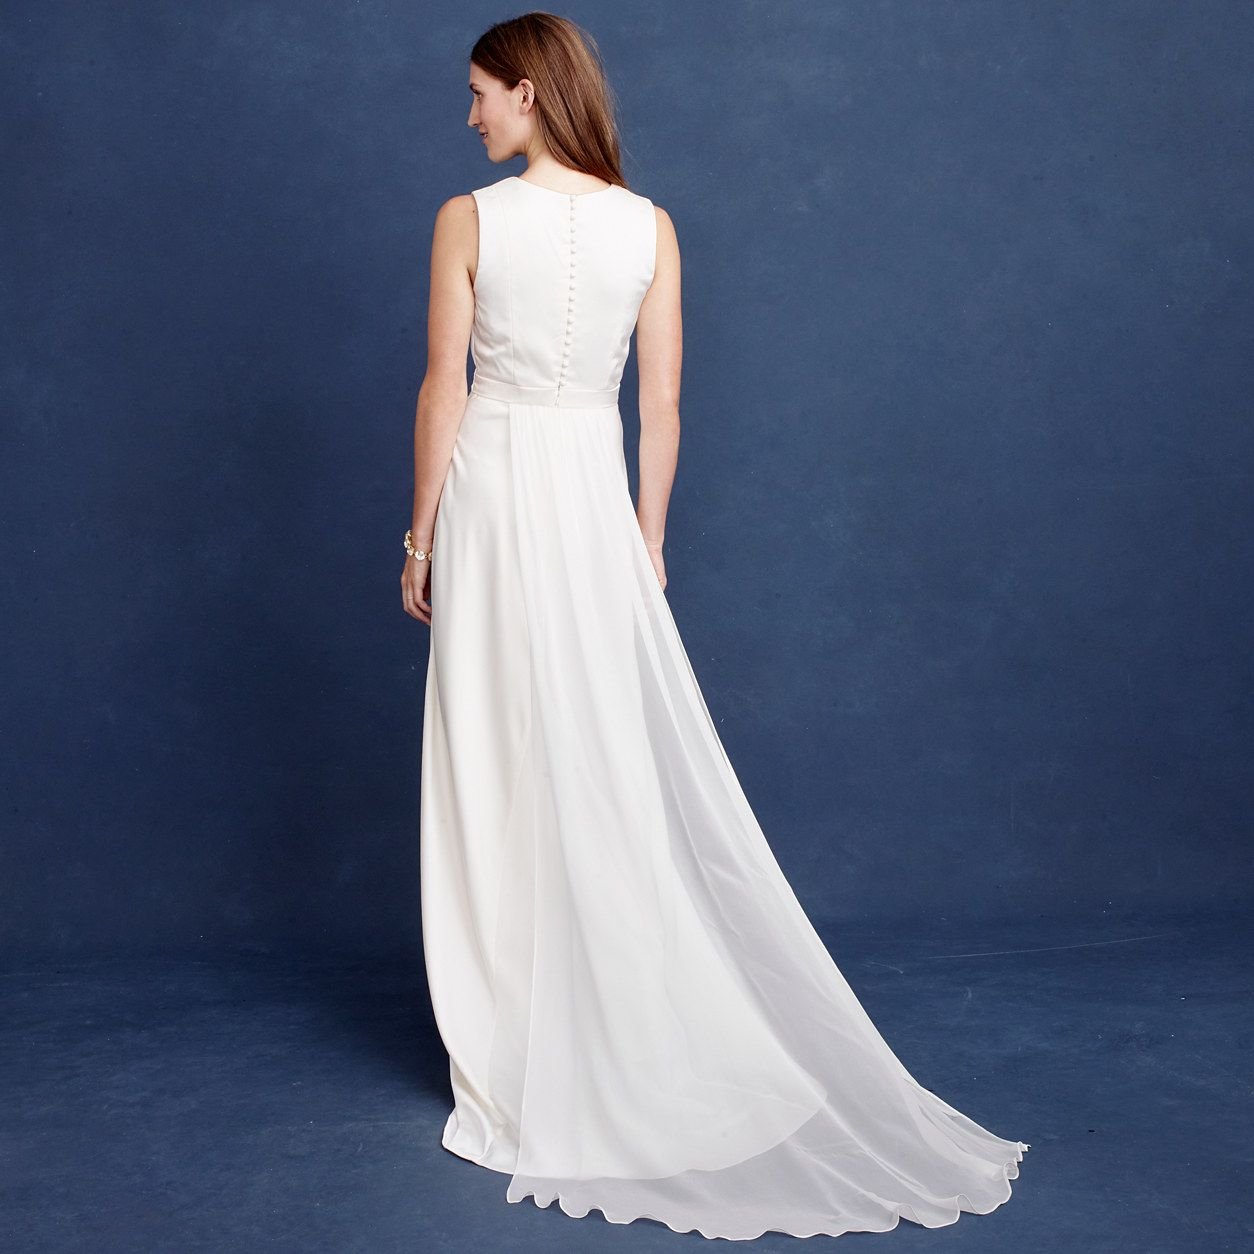 Lana gown for the bride jew wedding stuff pinterest lana gown for the bride jew ombrellifo Choice Image